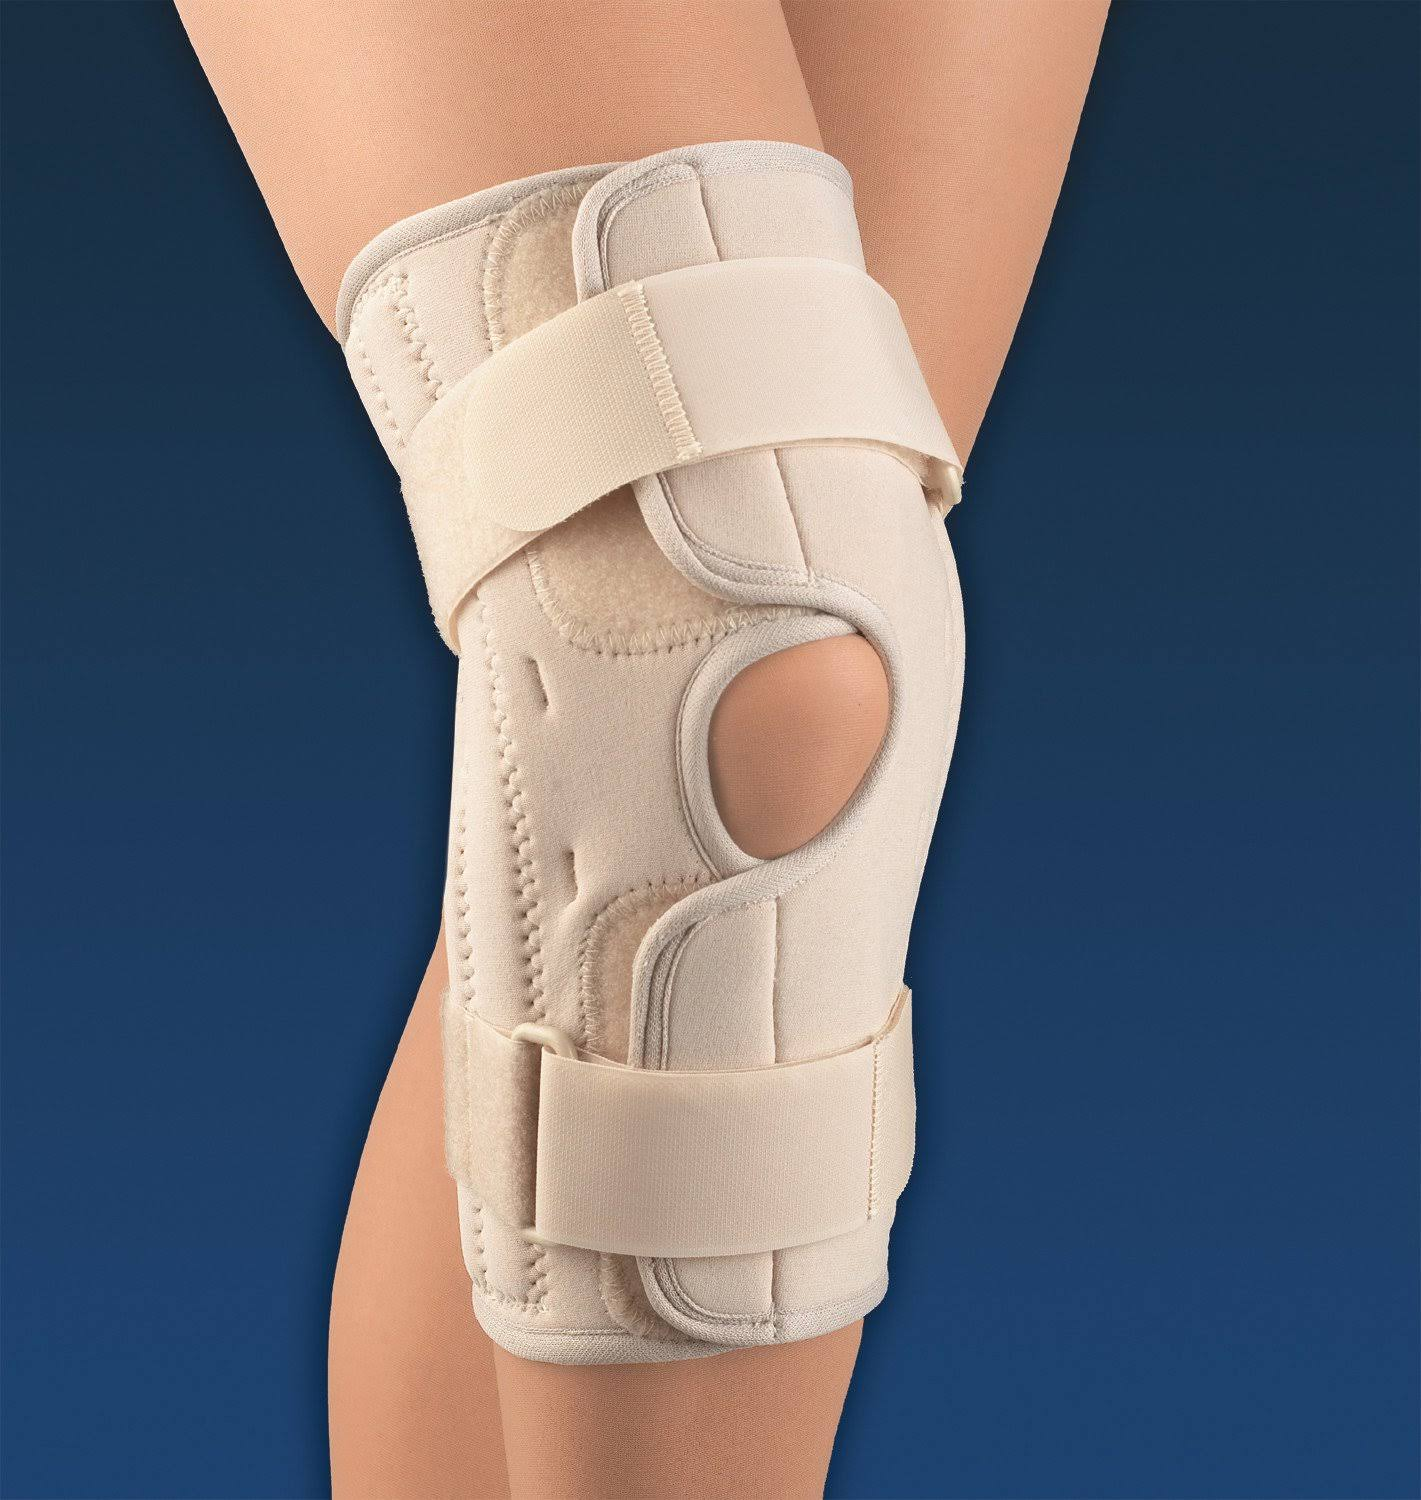 Soft Form Wrap Around Stabilizing Knee Support : Large